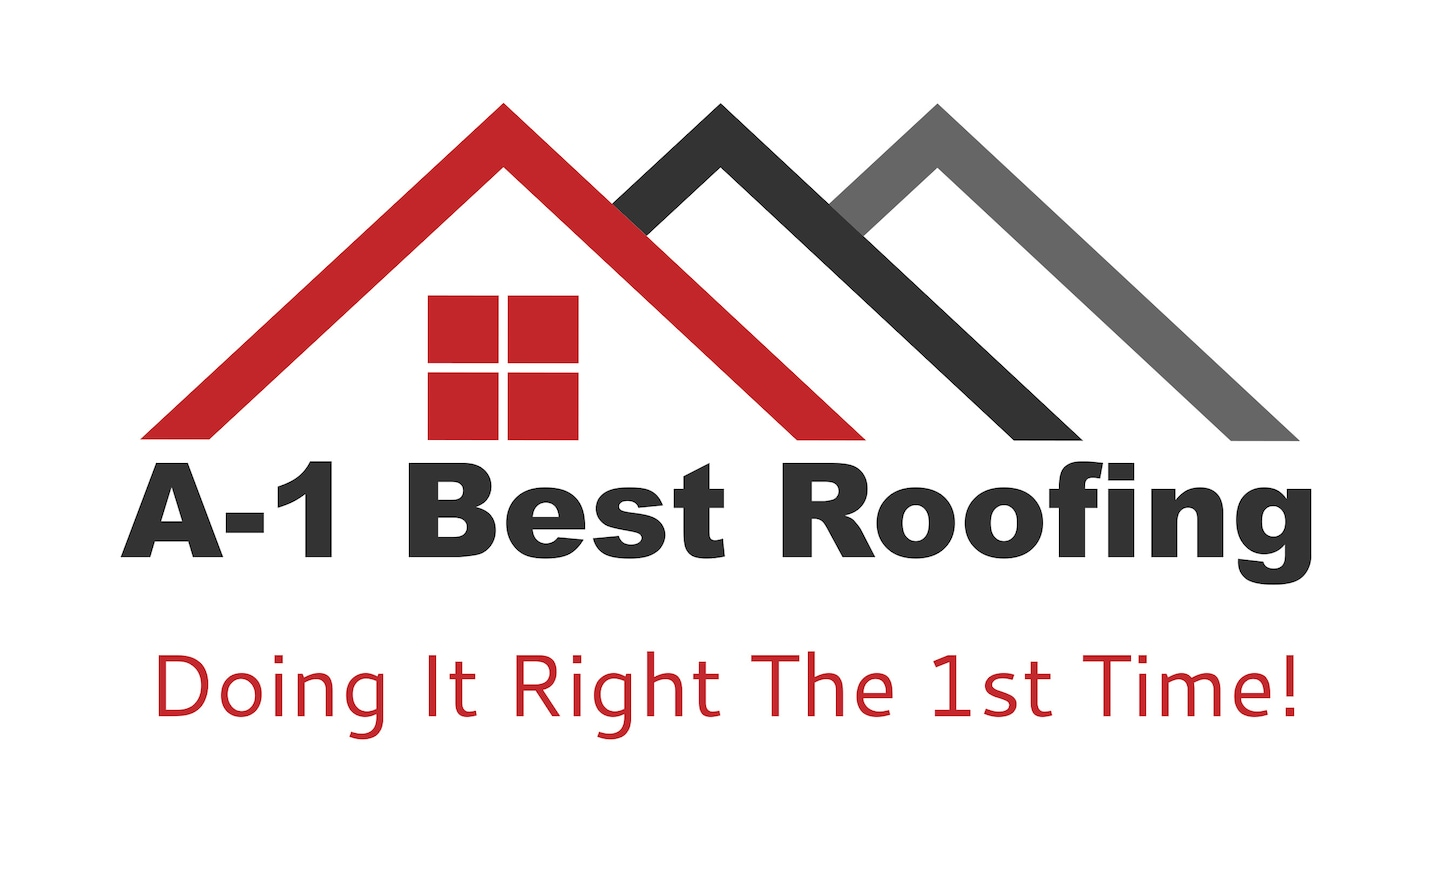 A1 Best Roofing logo